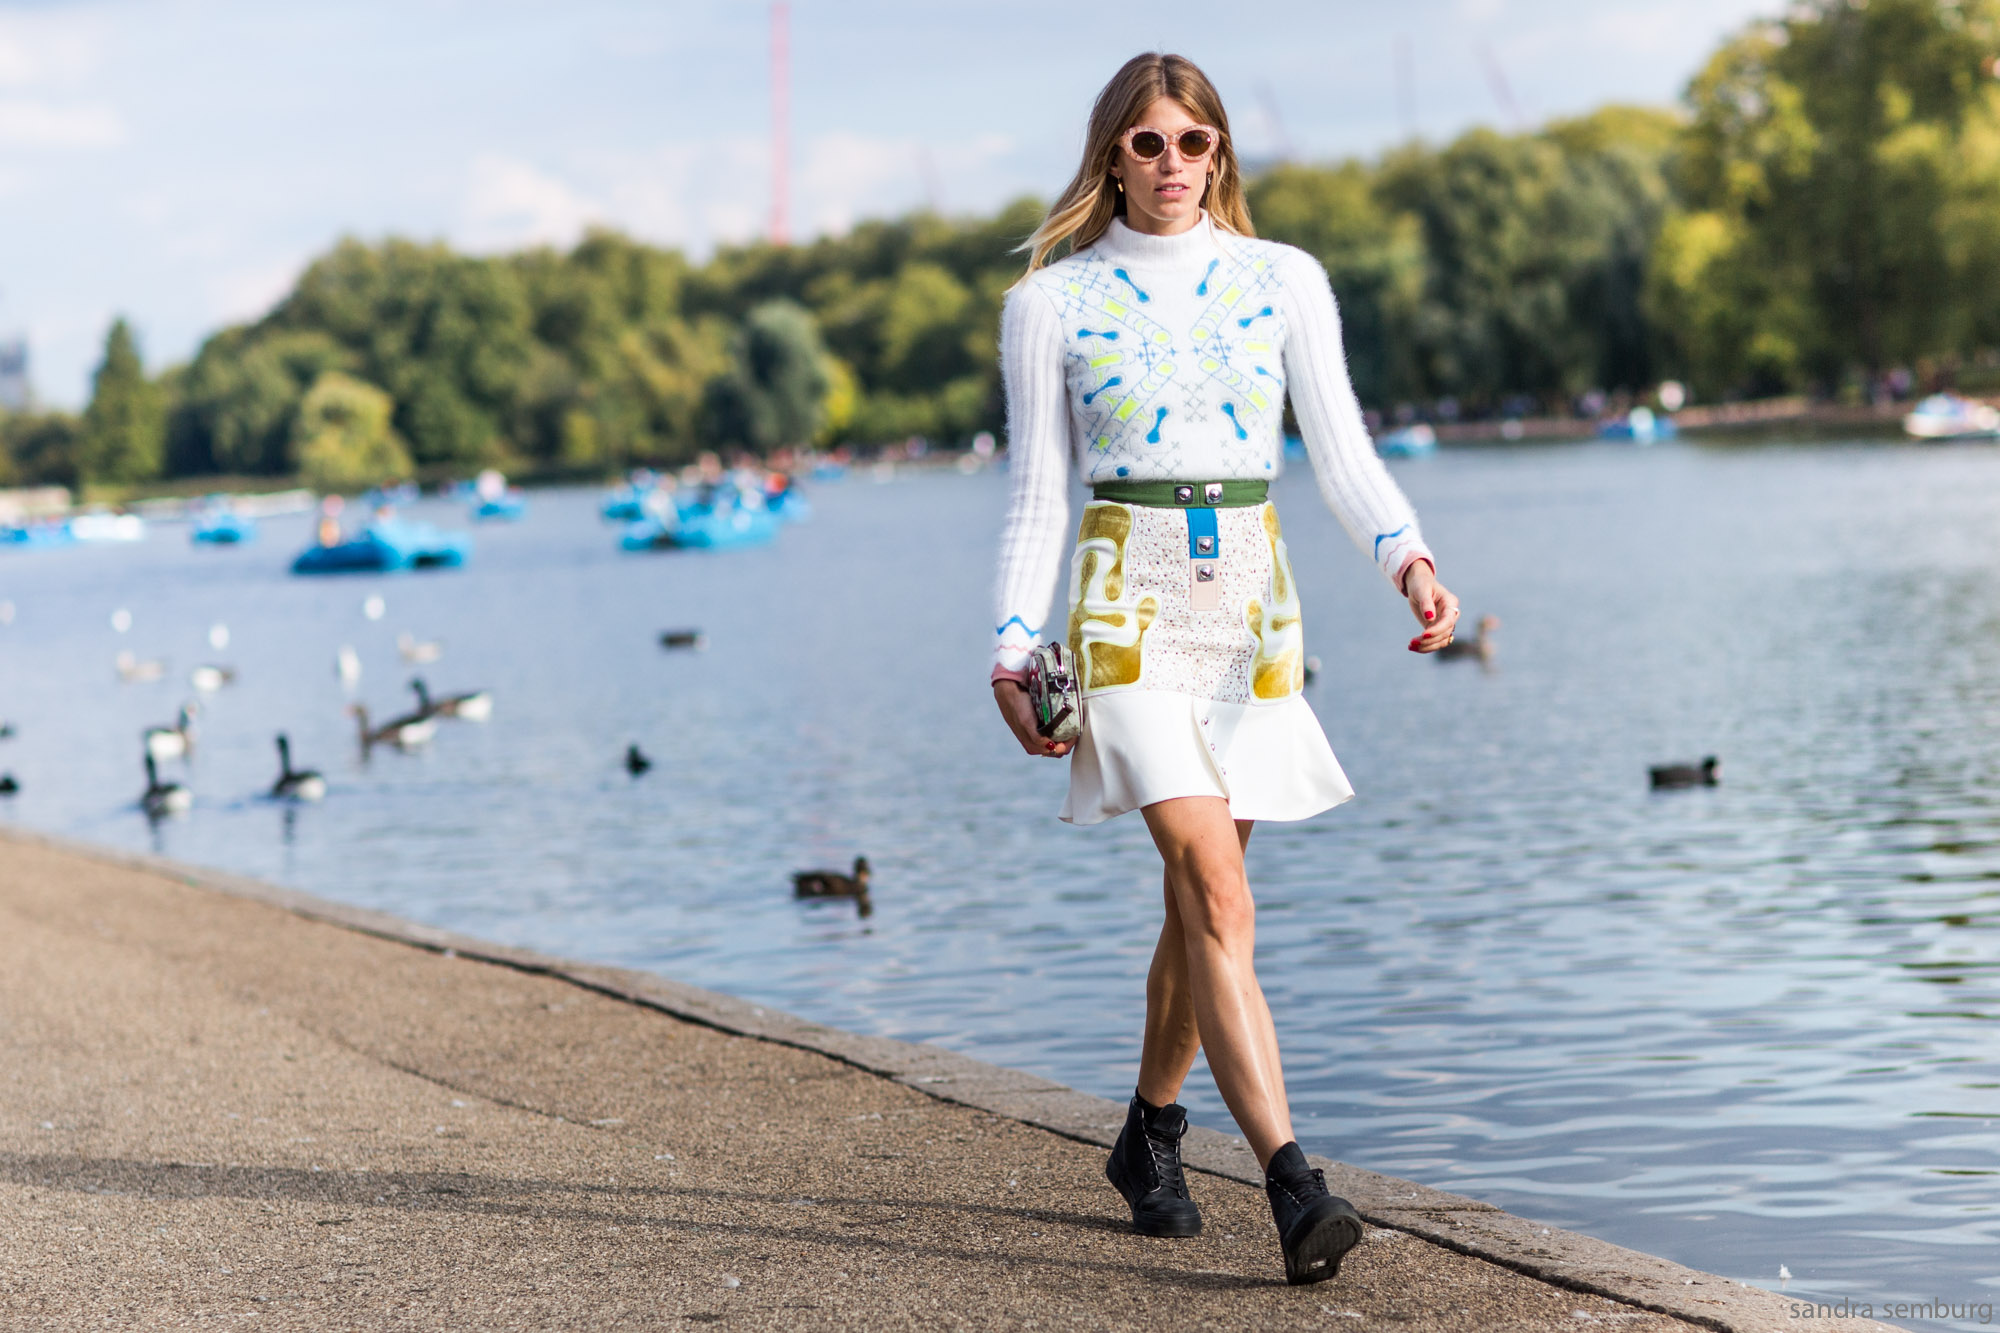 London_SS2016_day3_sandrasemburg-20150920-5577-3